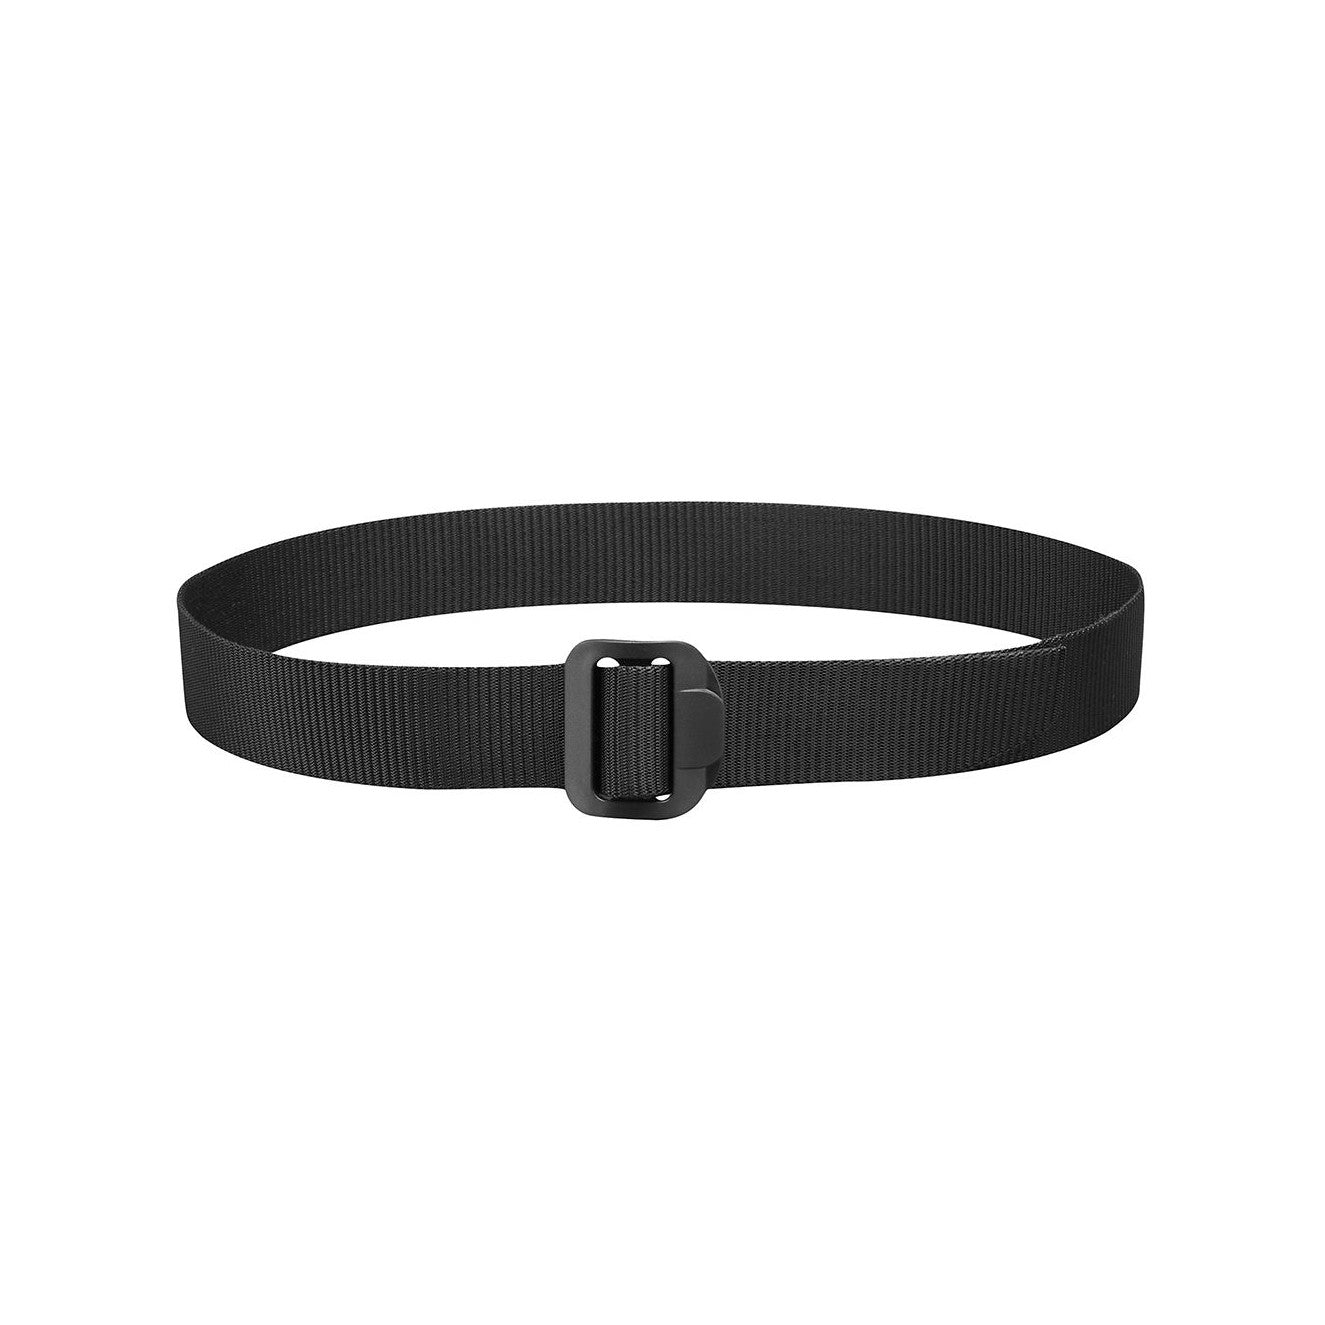 Propper Tactical Duty Belt Black